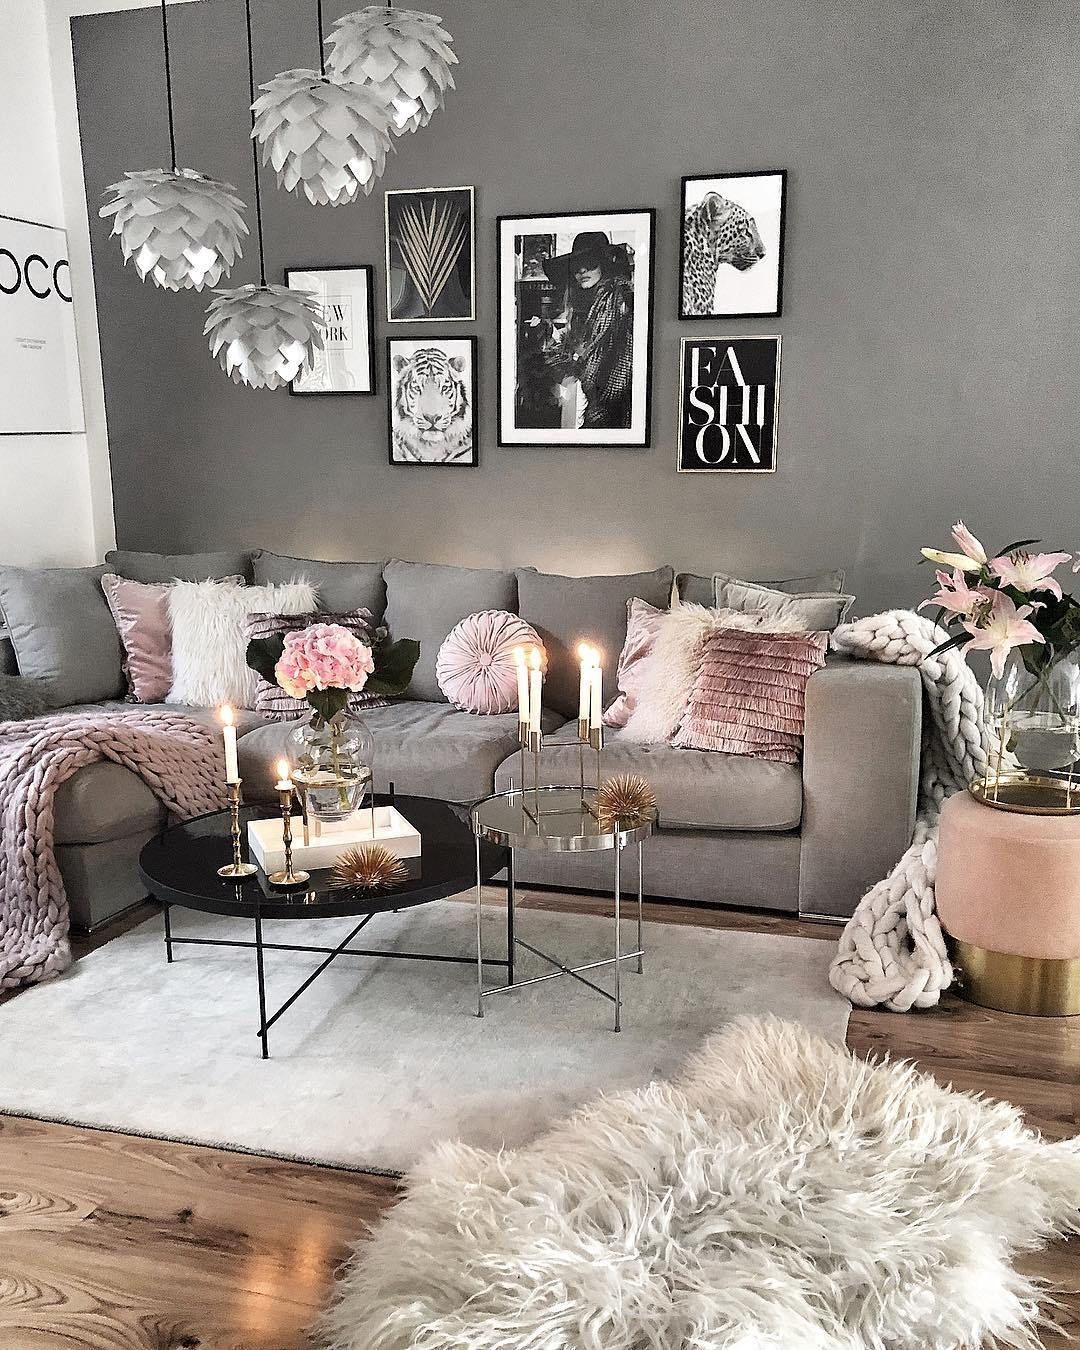 Recreate this grey and pink cozy living room decor #livingroom